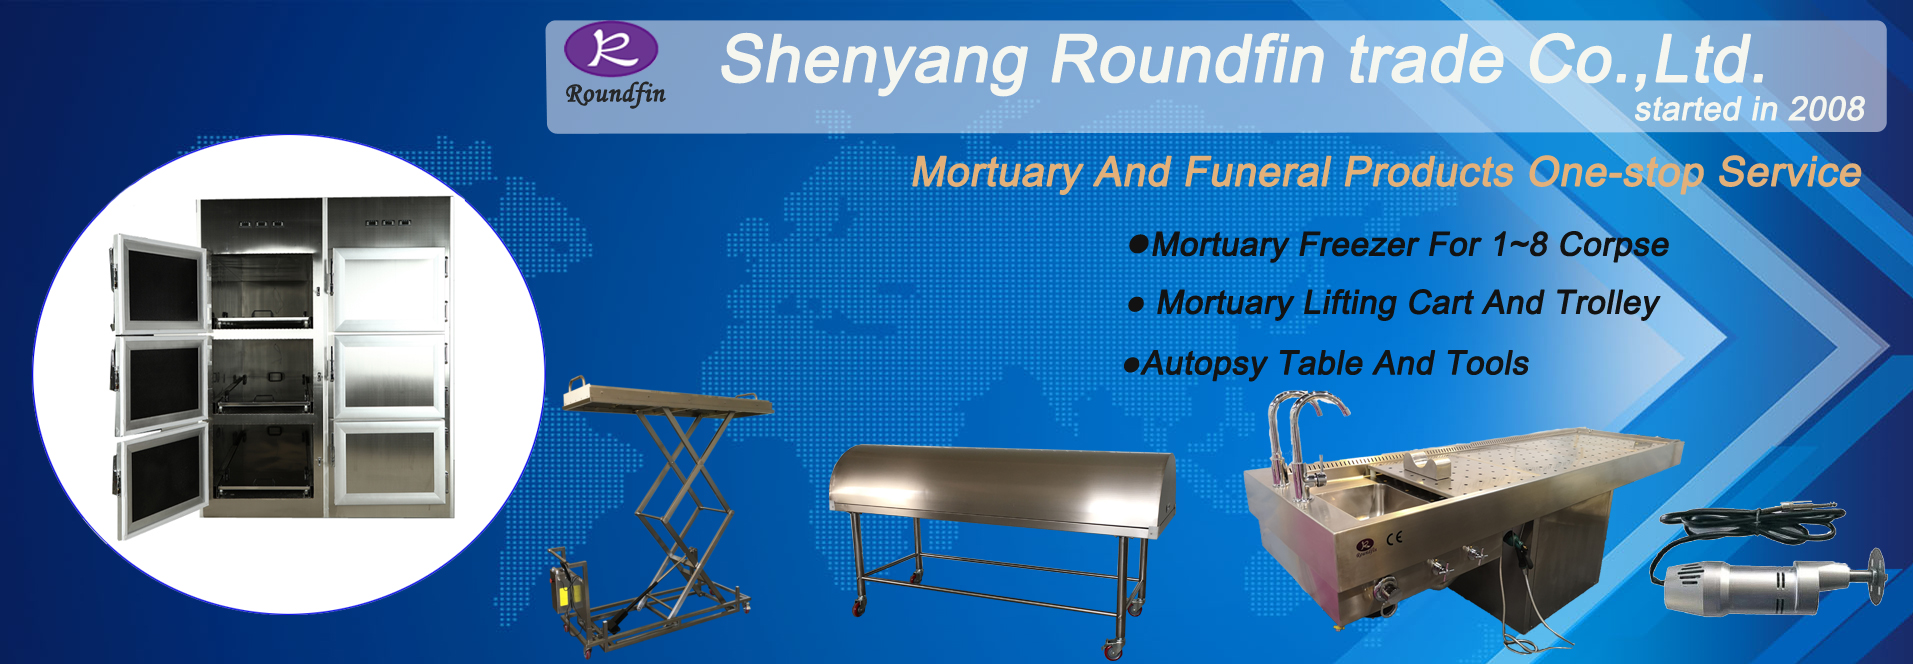 Roundfin brand mortuary products